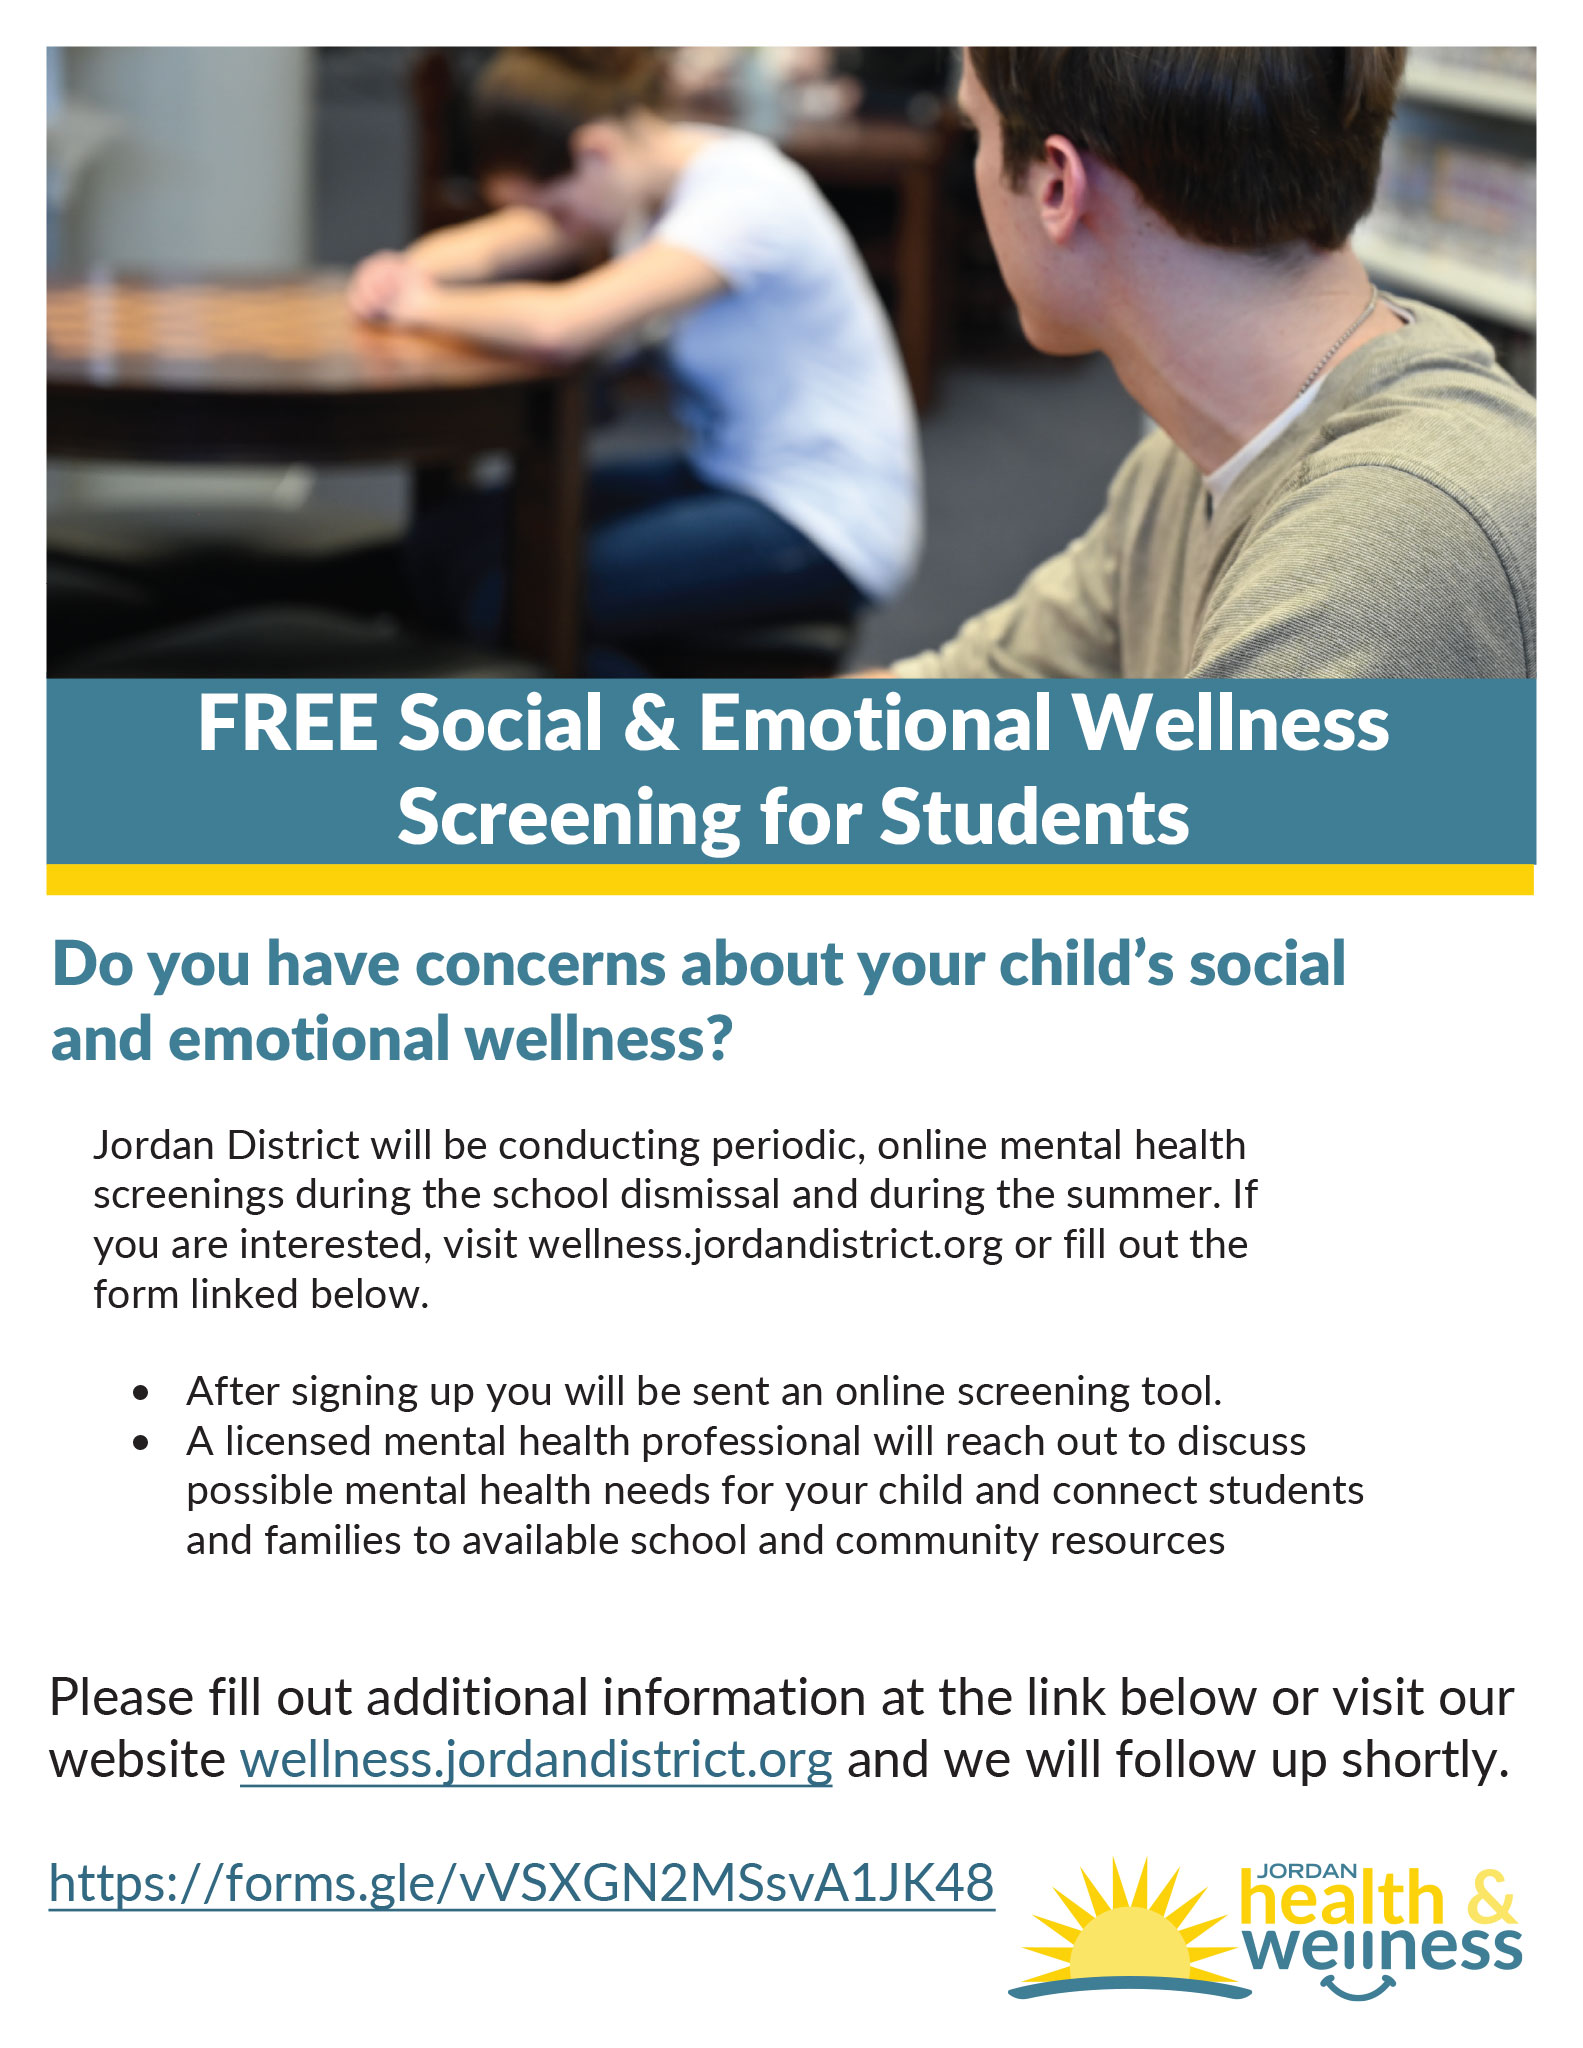 FREE Social & Emotional Screening for Students